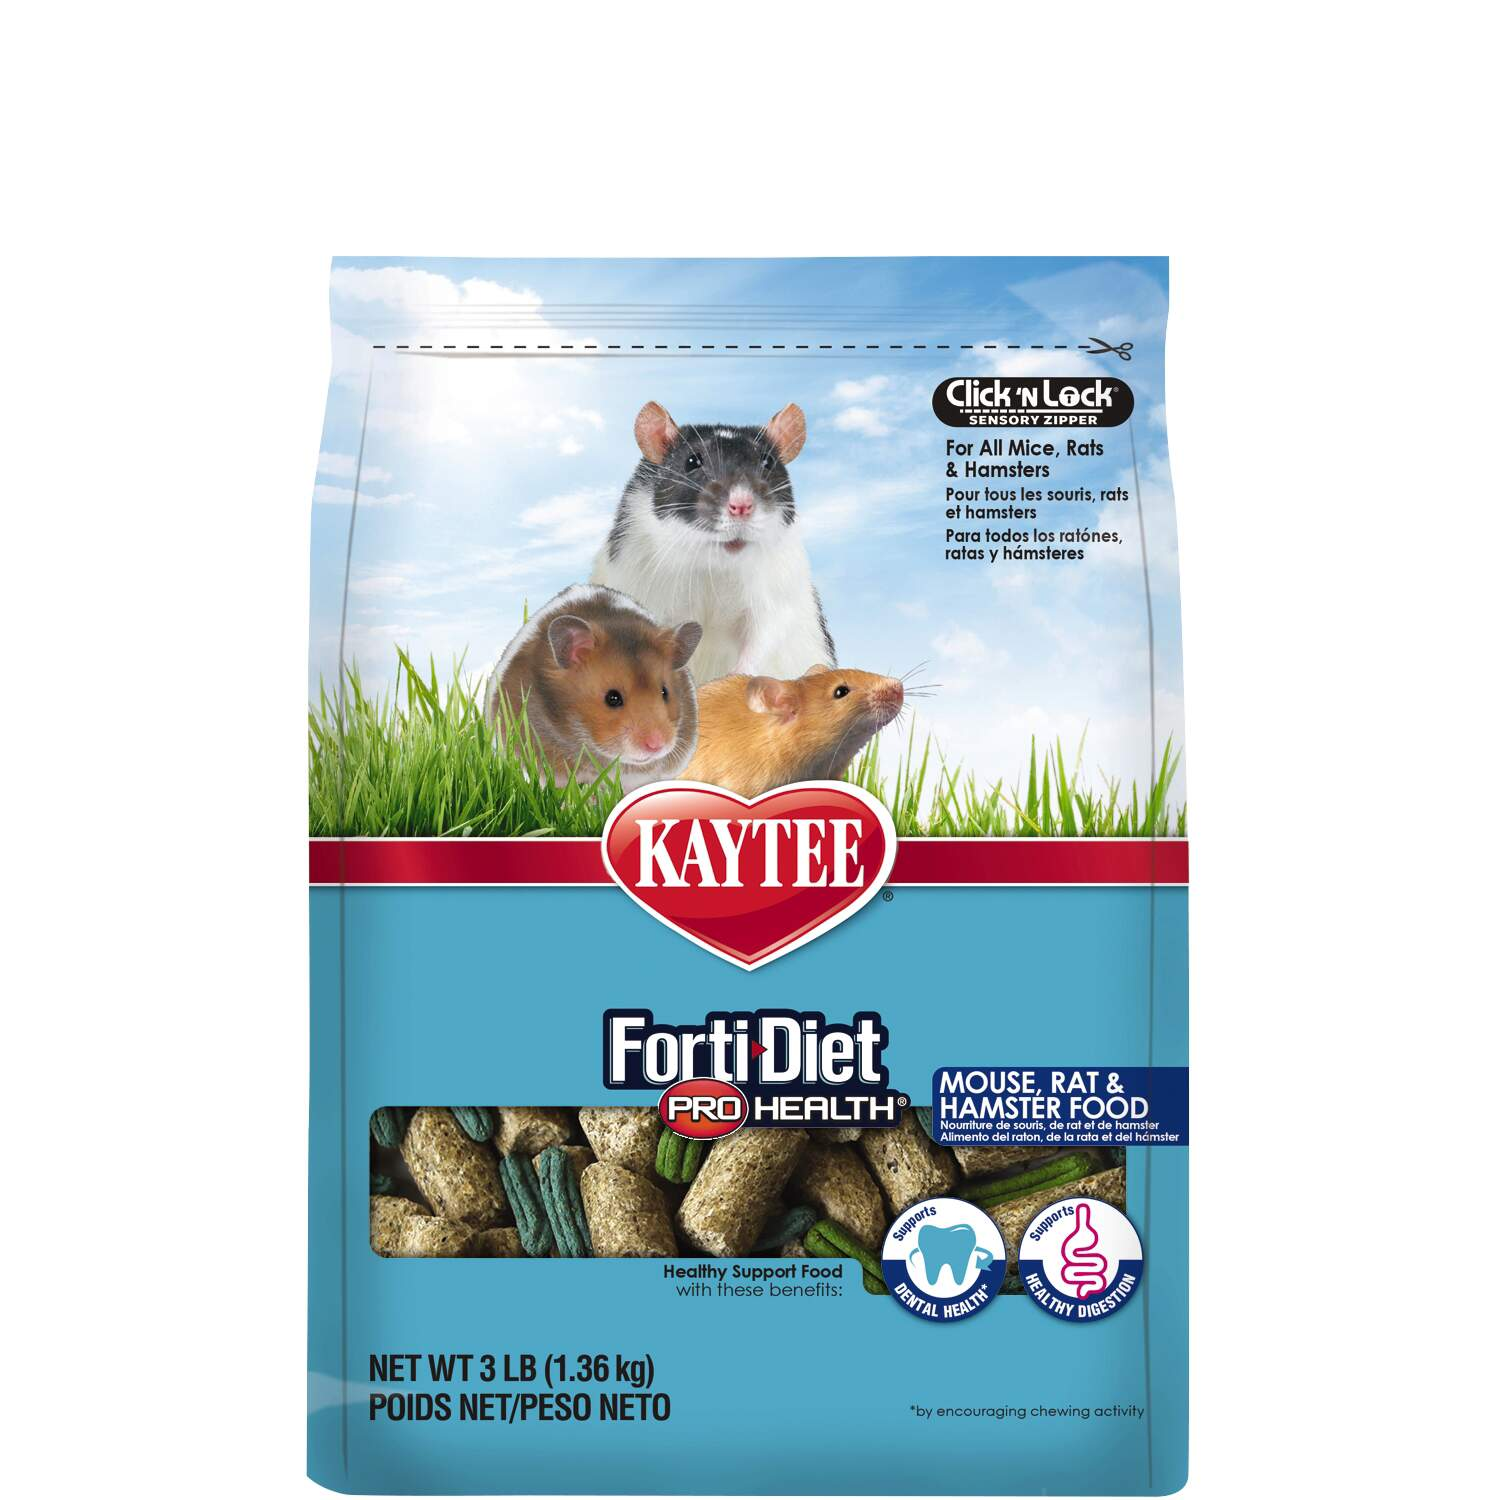 Forti-Diet Pro Health Mouse, Rat and Hamster Food : Premium Mouse ...